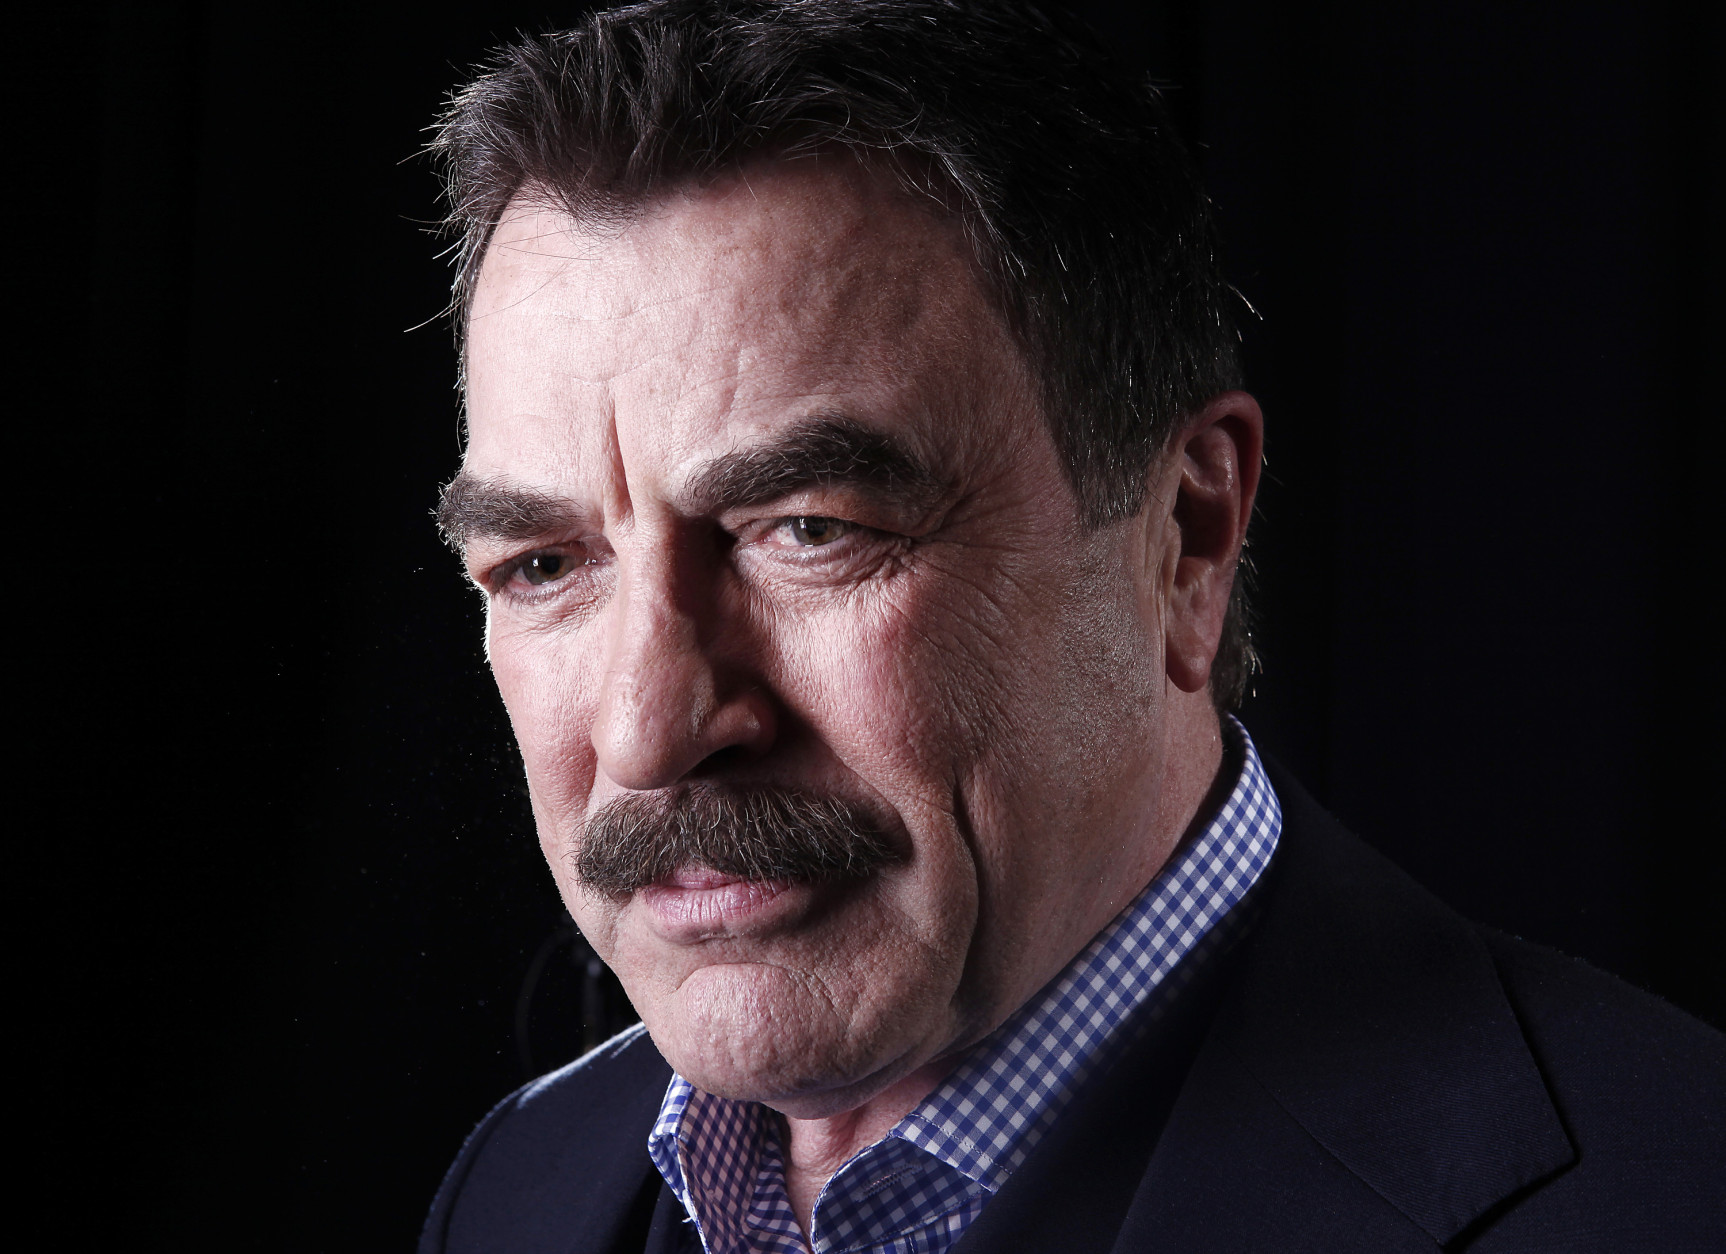 FILE - This March 21, 2012 file photo Actor Tom Selleck poses for a portrait in New York. A lawsuit accuses Selleck of stealing truckloads of water from a public hydrant and bringing it to his Southern California ranch. The suit filed Monday, July 6, 2015 by a Ventura County water district claims that on more than a dozen occasions a truck filled up at a hydrant and hauled the water to Selleck's 60-acre spread in Westlake Village.  (AP Photo/Carlo Allegri, File)